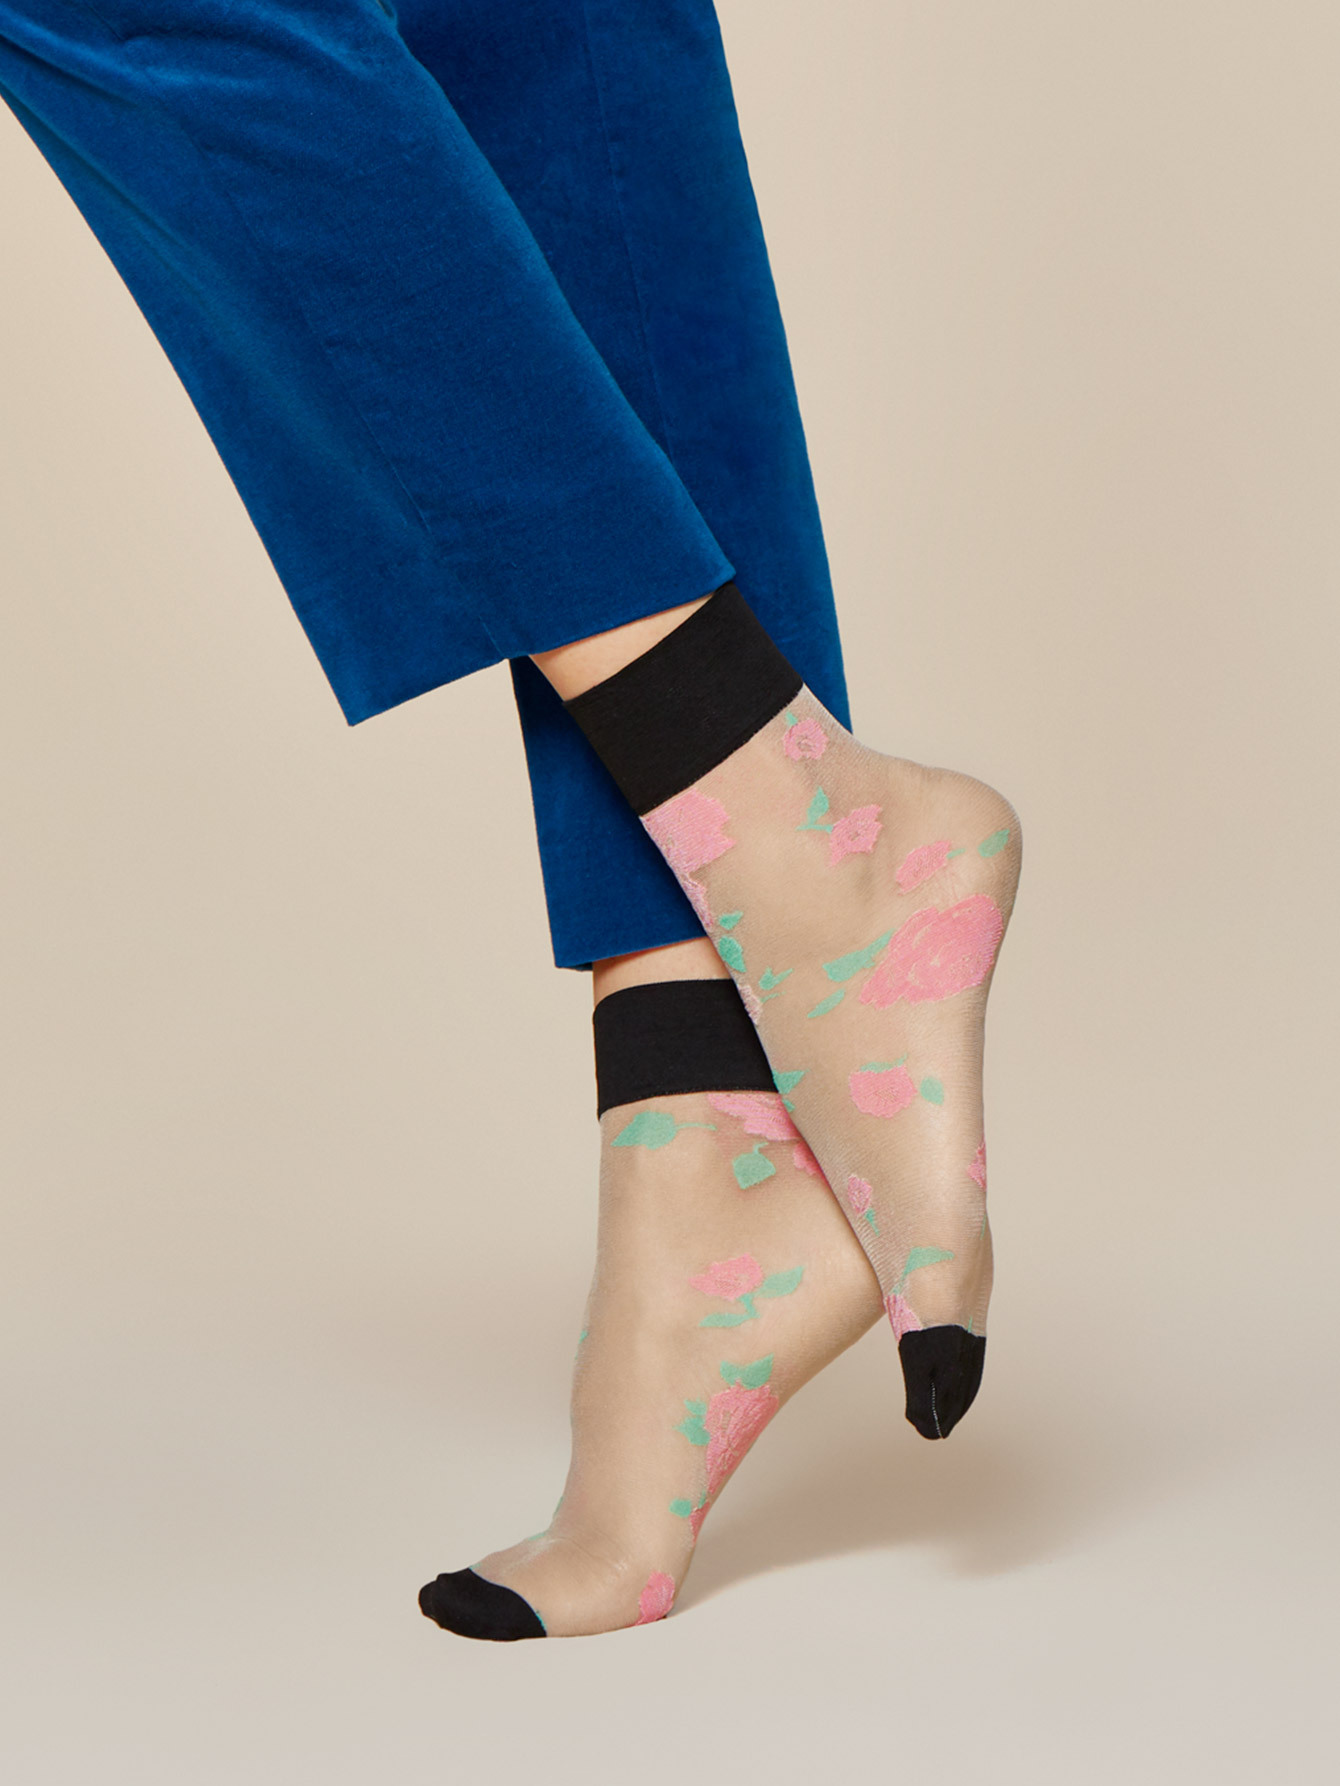 Fiore: Colorblock Blossom Trouser Socks SOLD OUT